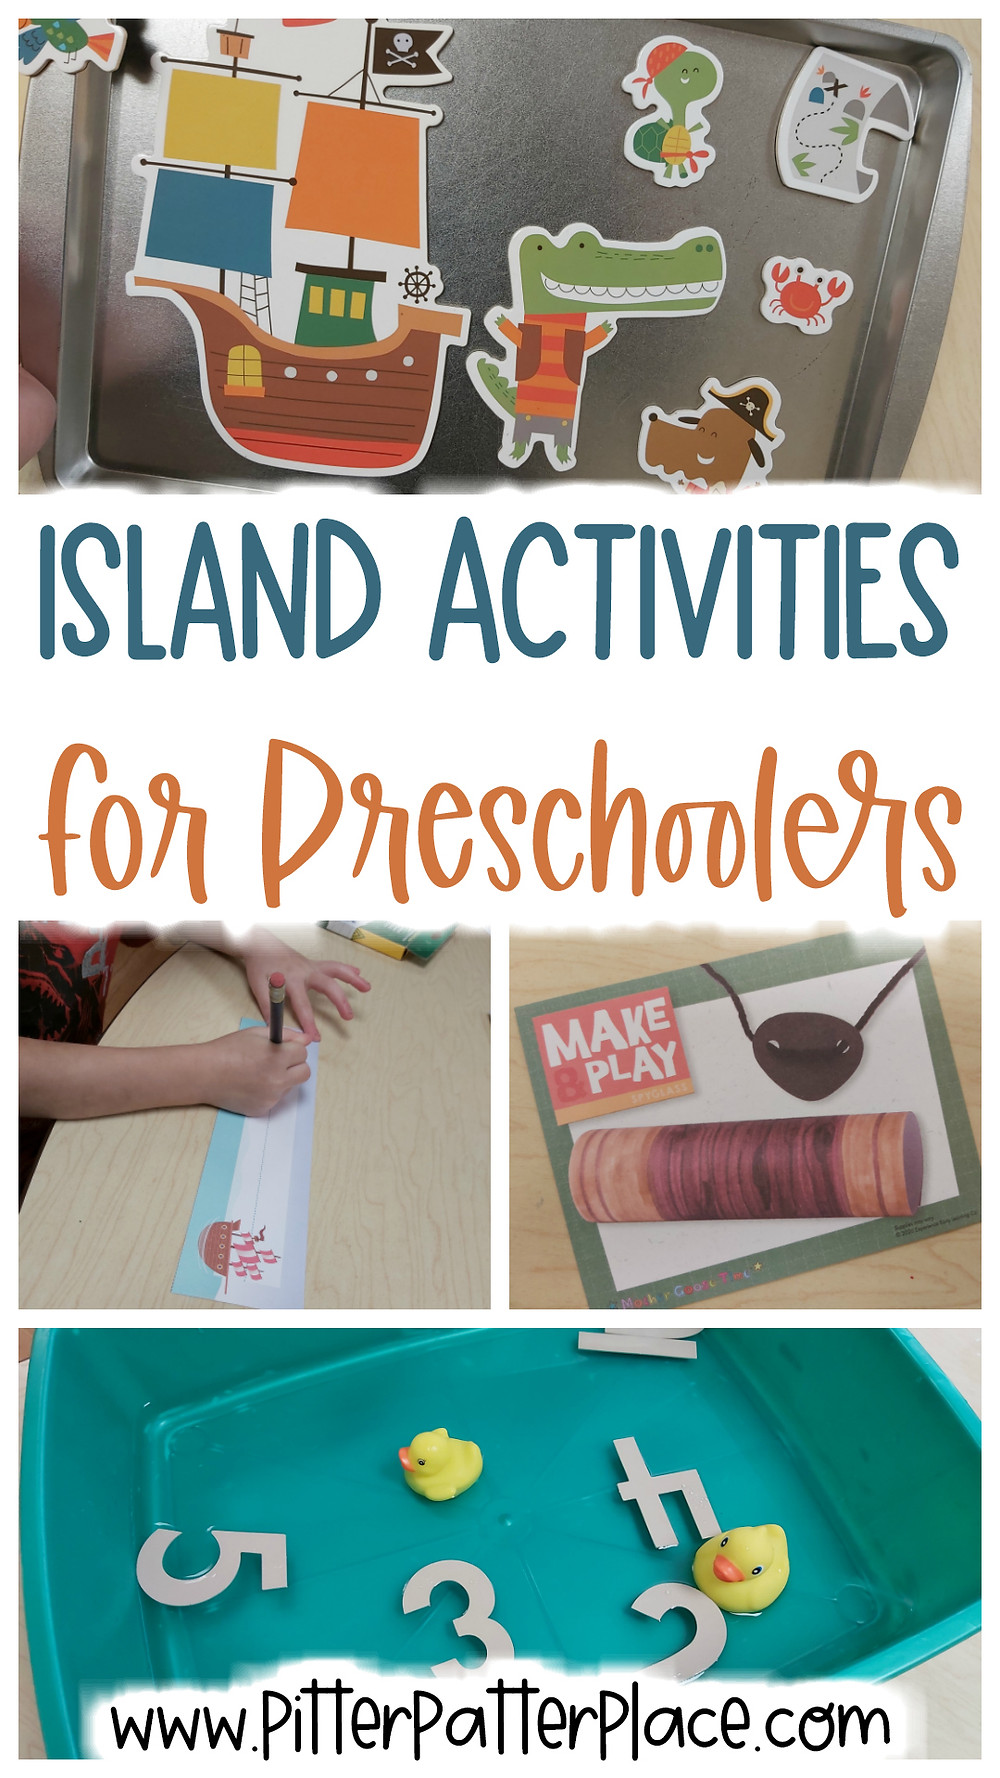 collage of island activities with text: Island Activities for Preschoolers